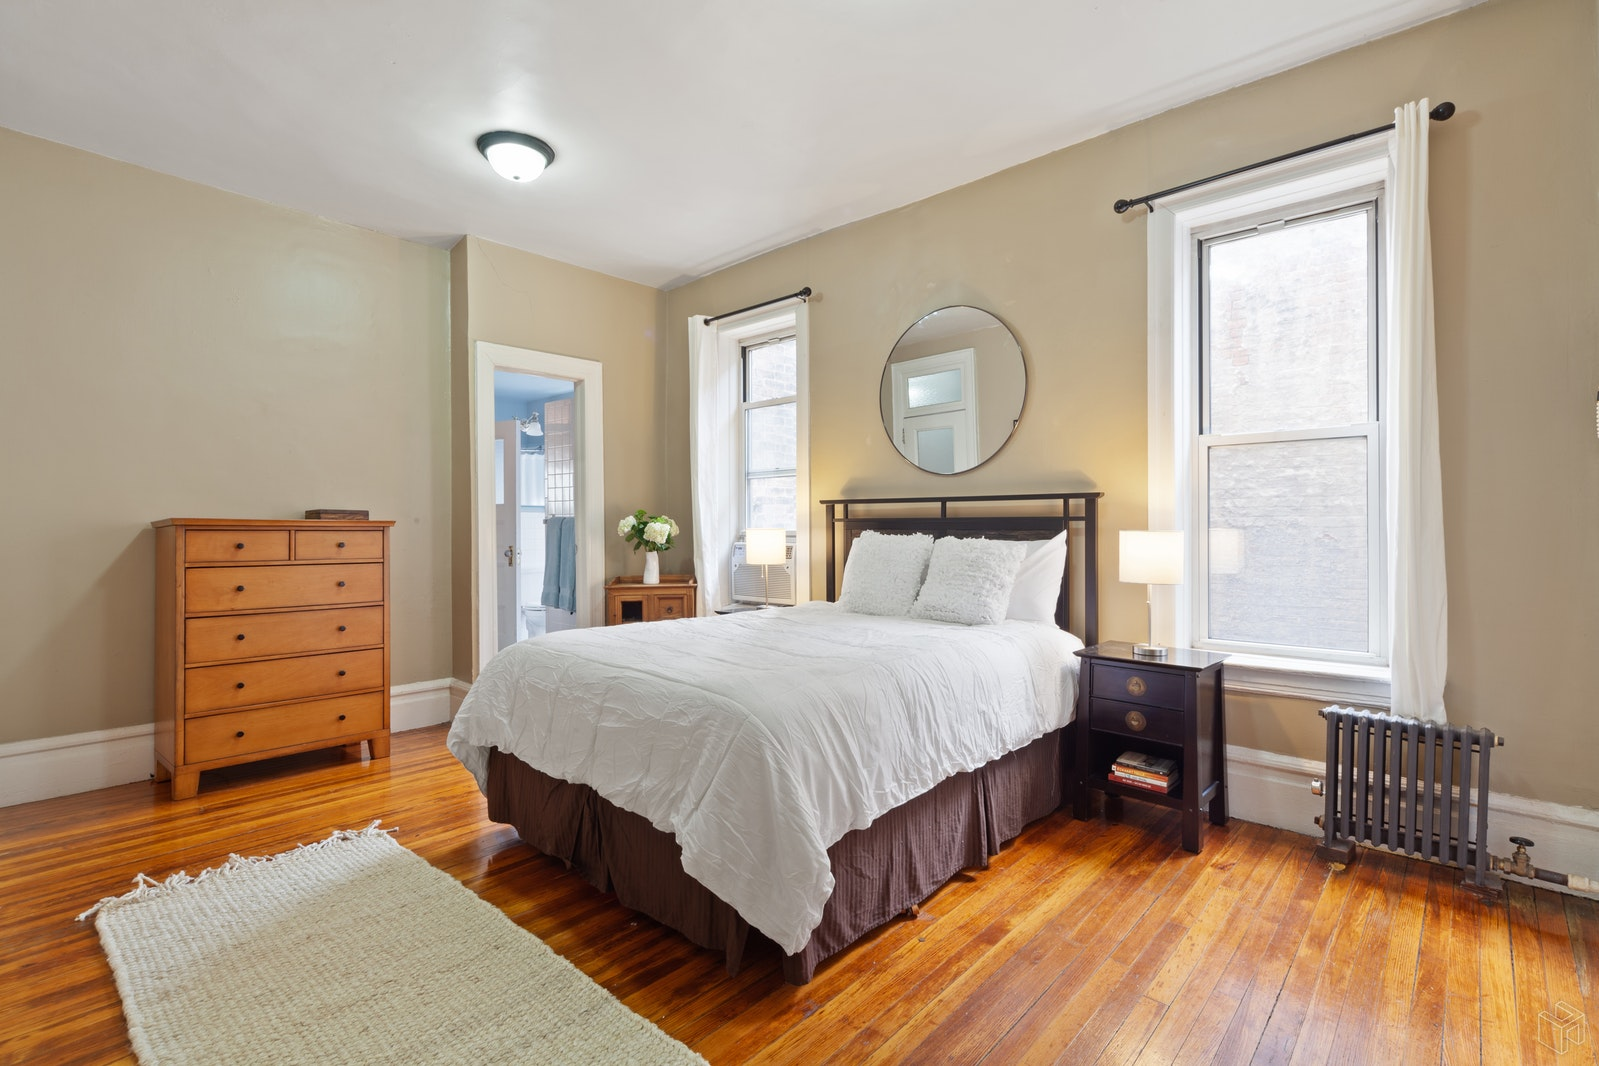 606 West 113th Street 4c, Upper West Side, NYC, 10025, $799,000, Property For Sale, Halstead Real Estate, Photo 2